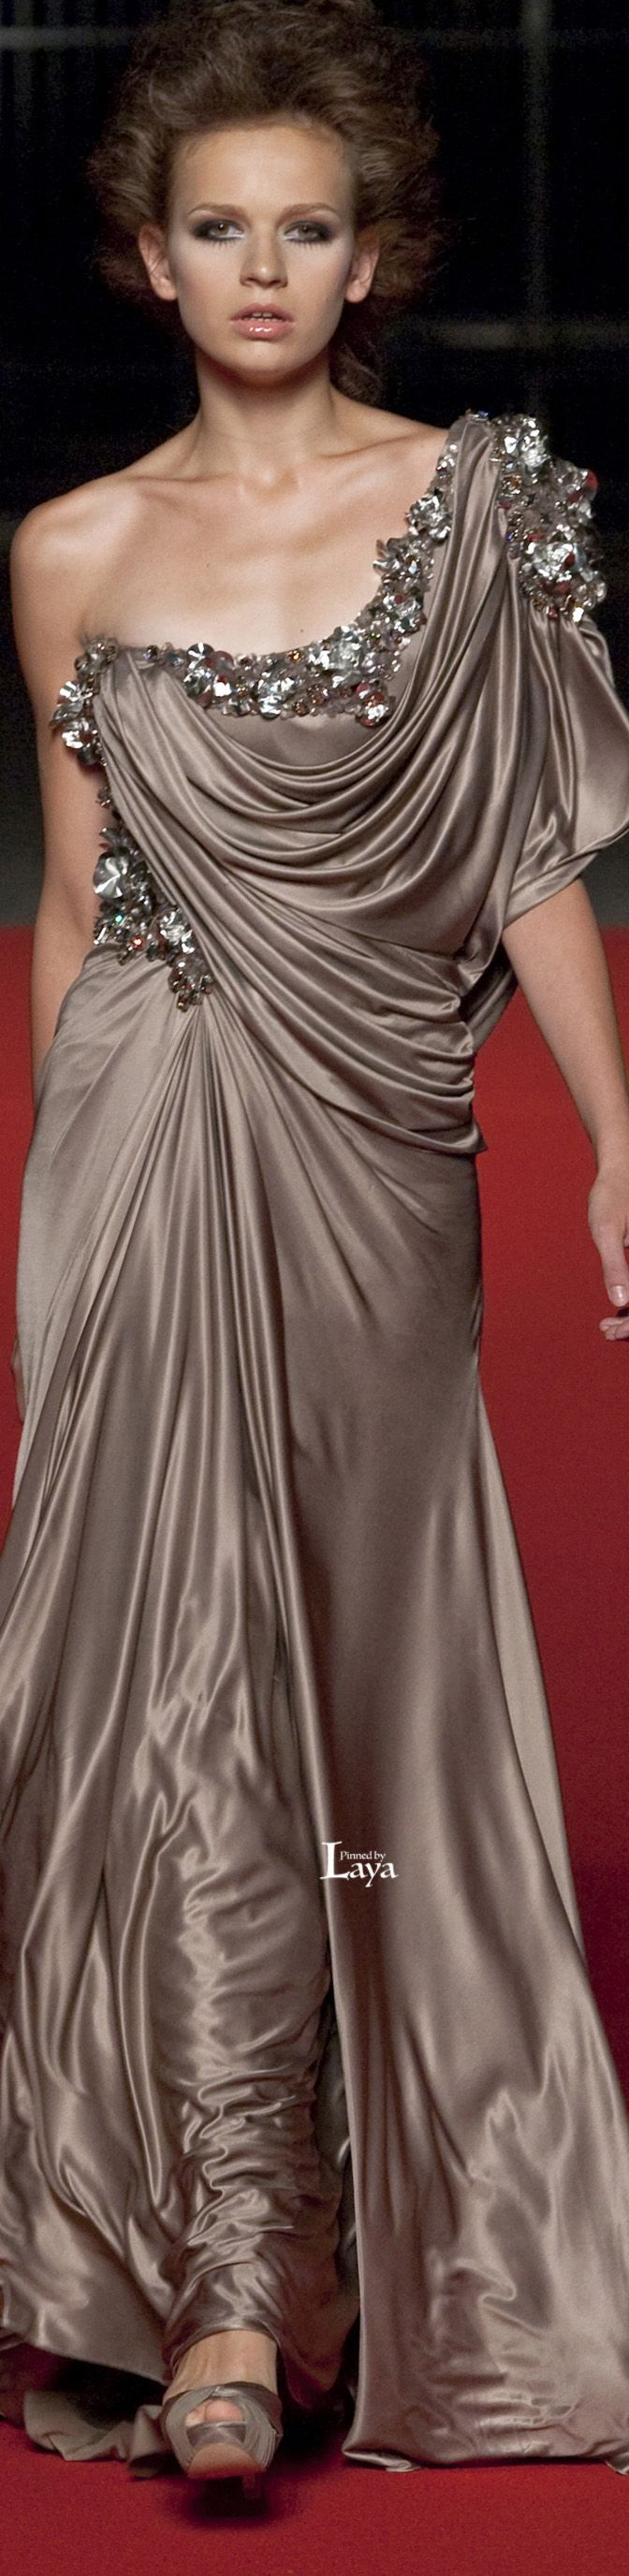 LAYA ABED MAHFOUZ Couture - alluring and seductive, Grecian style gown in a deep taupe with embellishment across the bodice and over the shoulder. The draping of the luxurious fabric is done with finesse and the otherwise plain gown needs nothing else. The supple fabric does all the work.